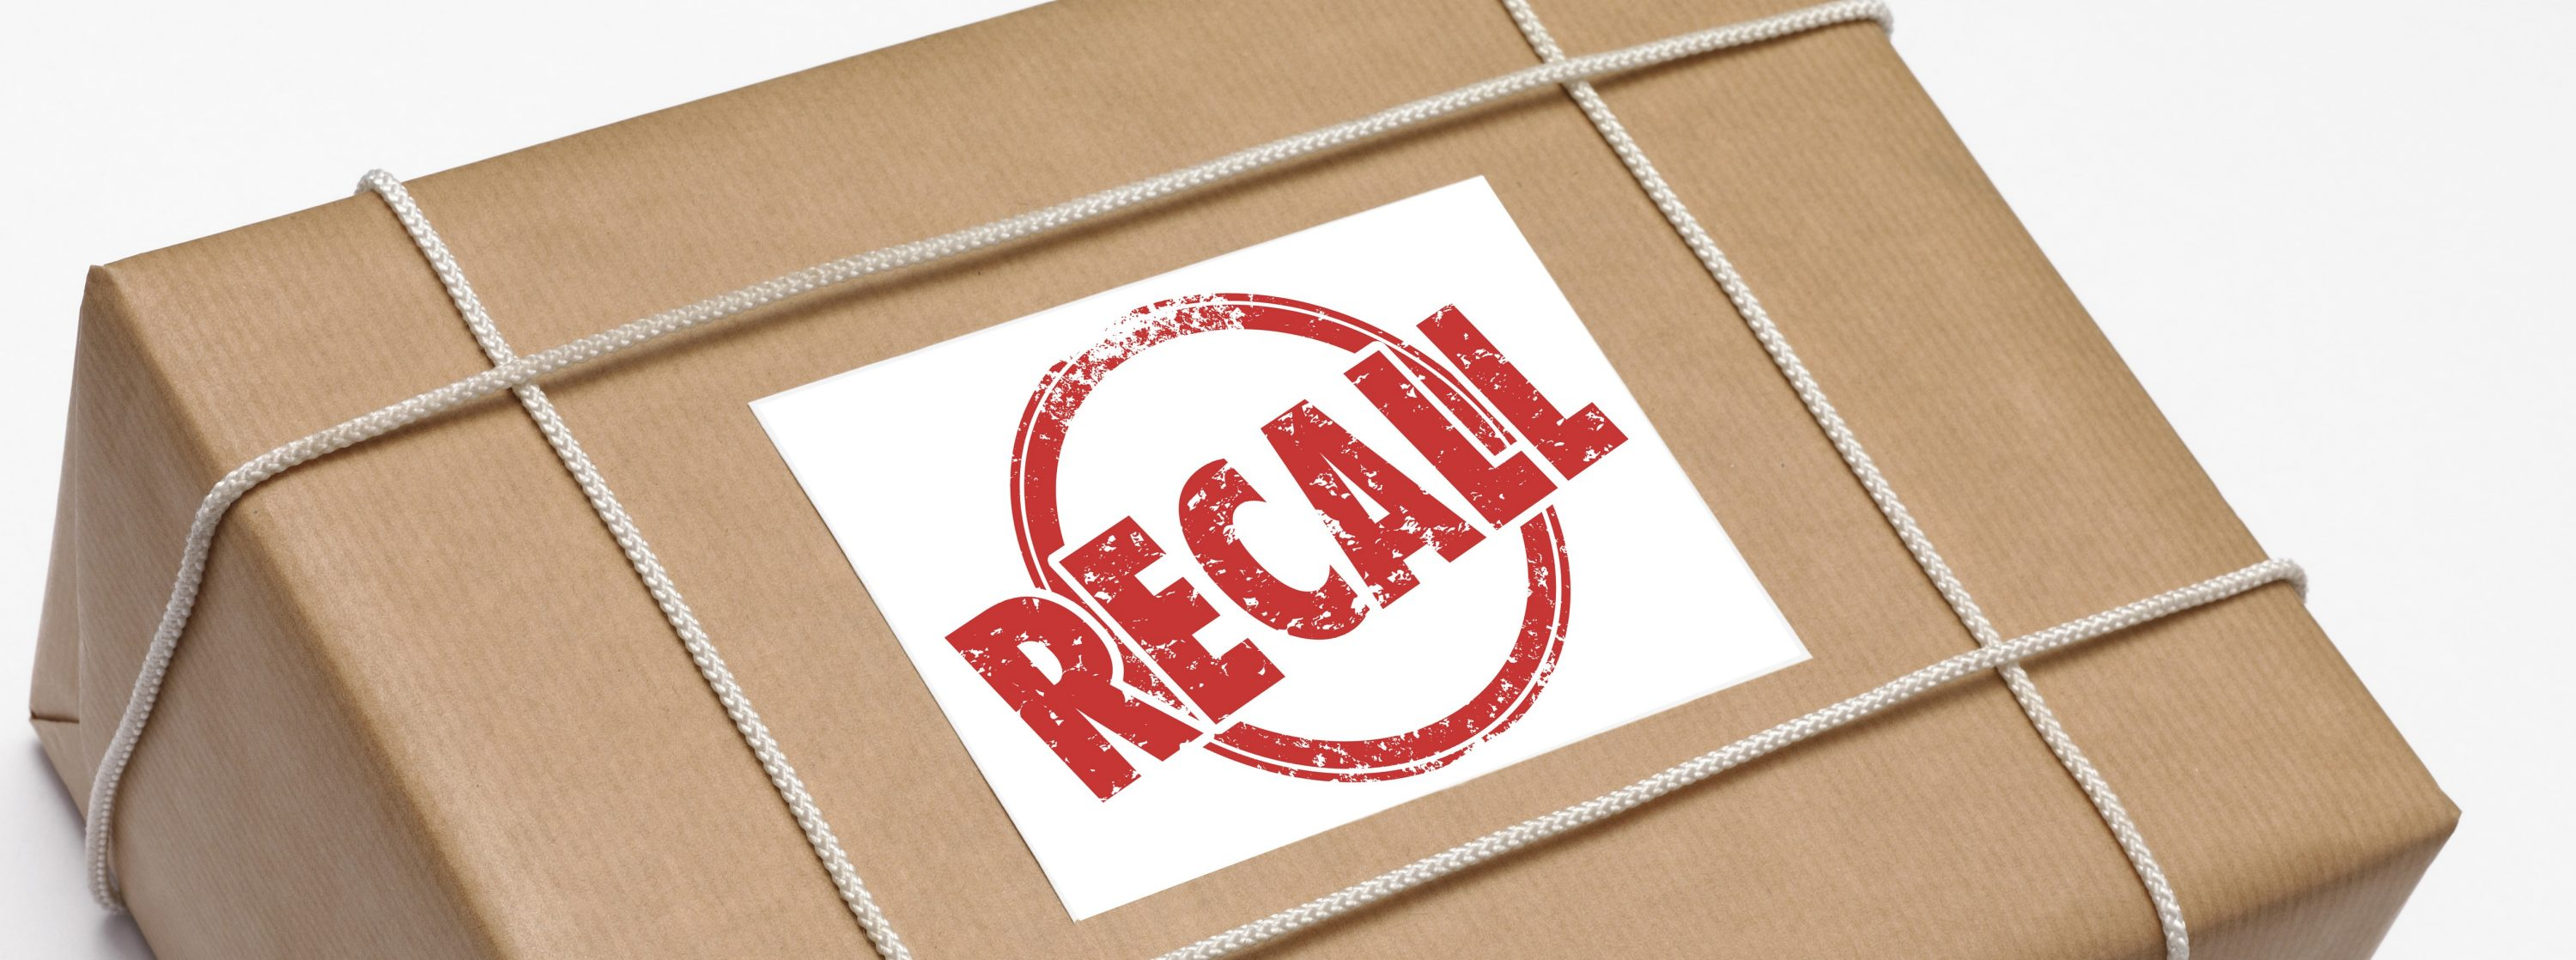 The number of recalls in the automotive industry has risen sharply over the last few years, with other industrial sectors are also increasingly affected. In tandem with this, there is a steady growth in demand for recall covers.